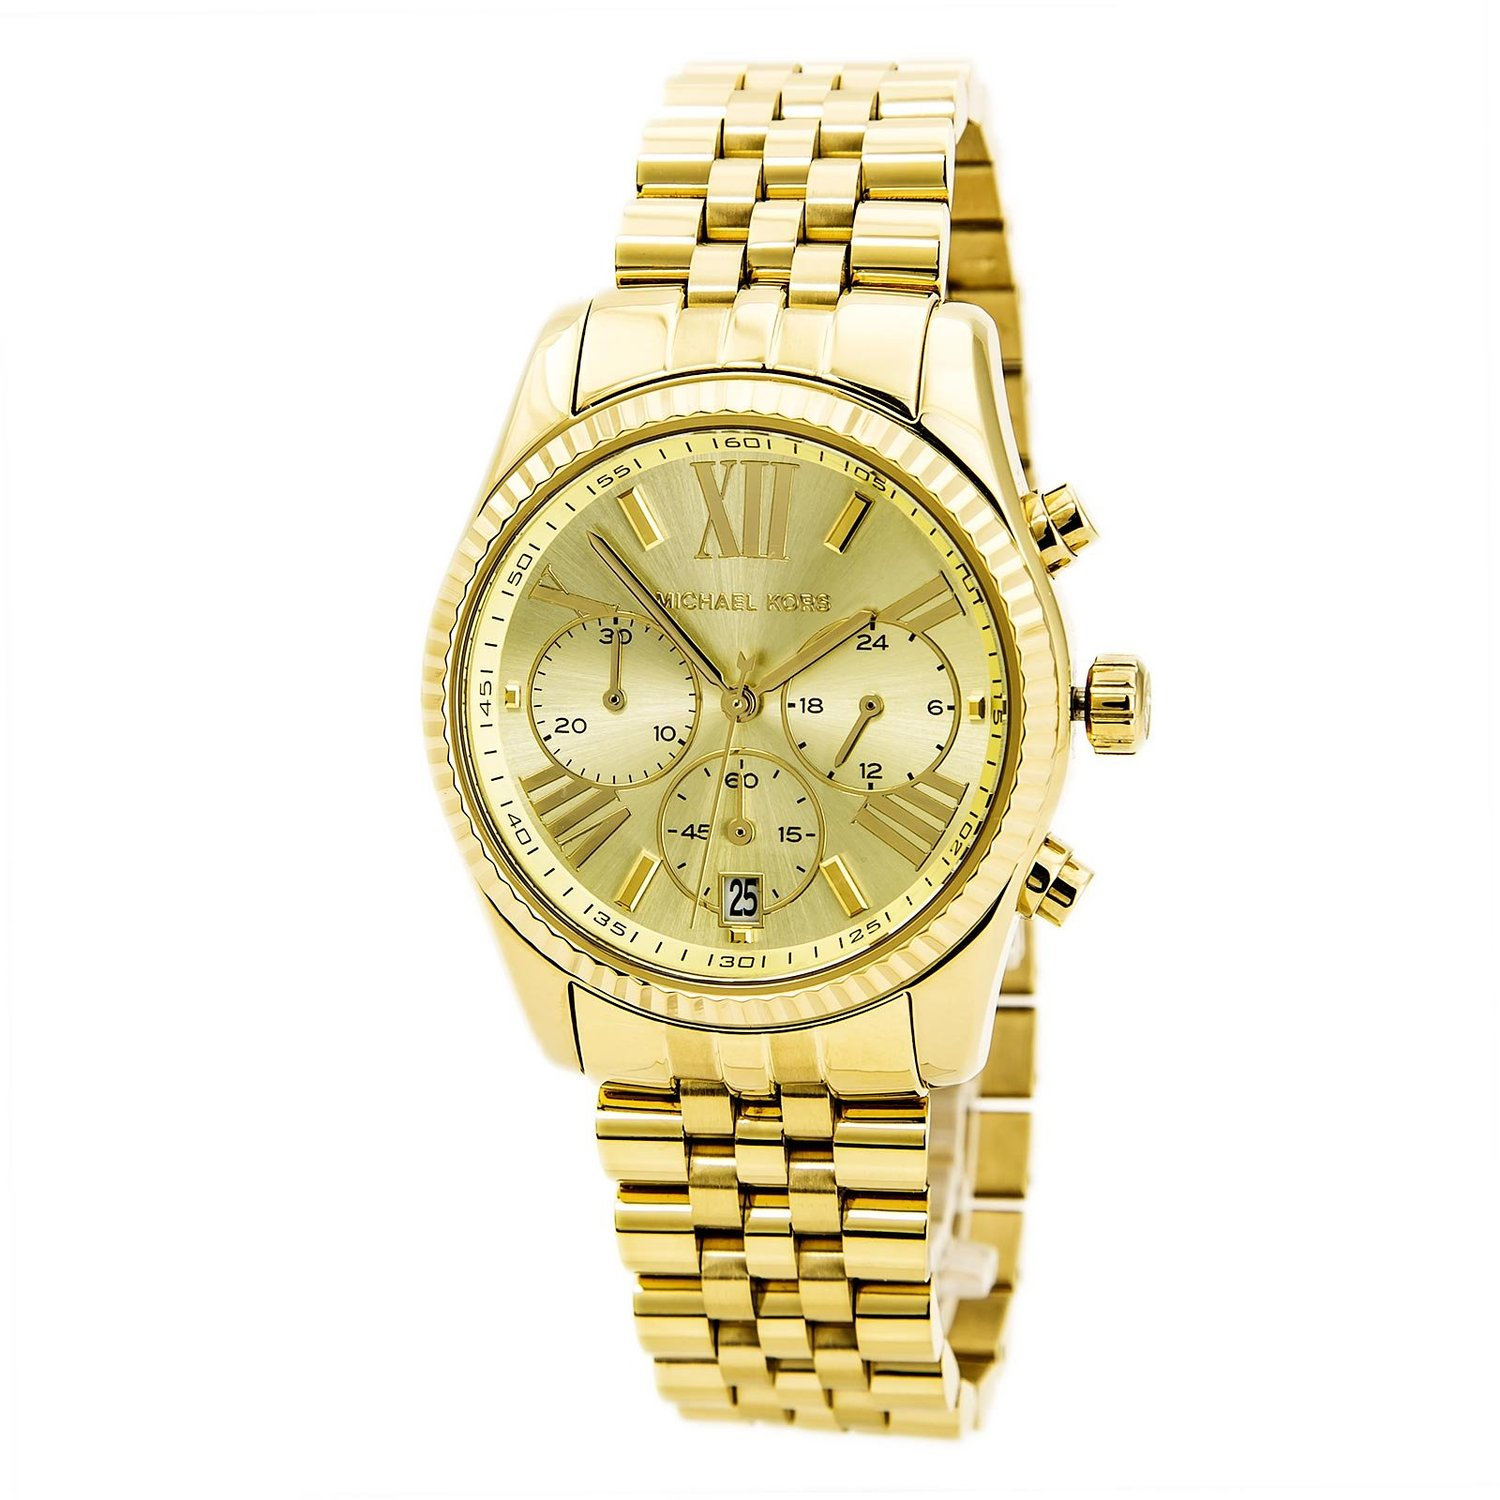 Amazon.com: michael kors watches lexington (gold): michael kors: watches